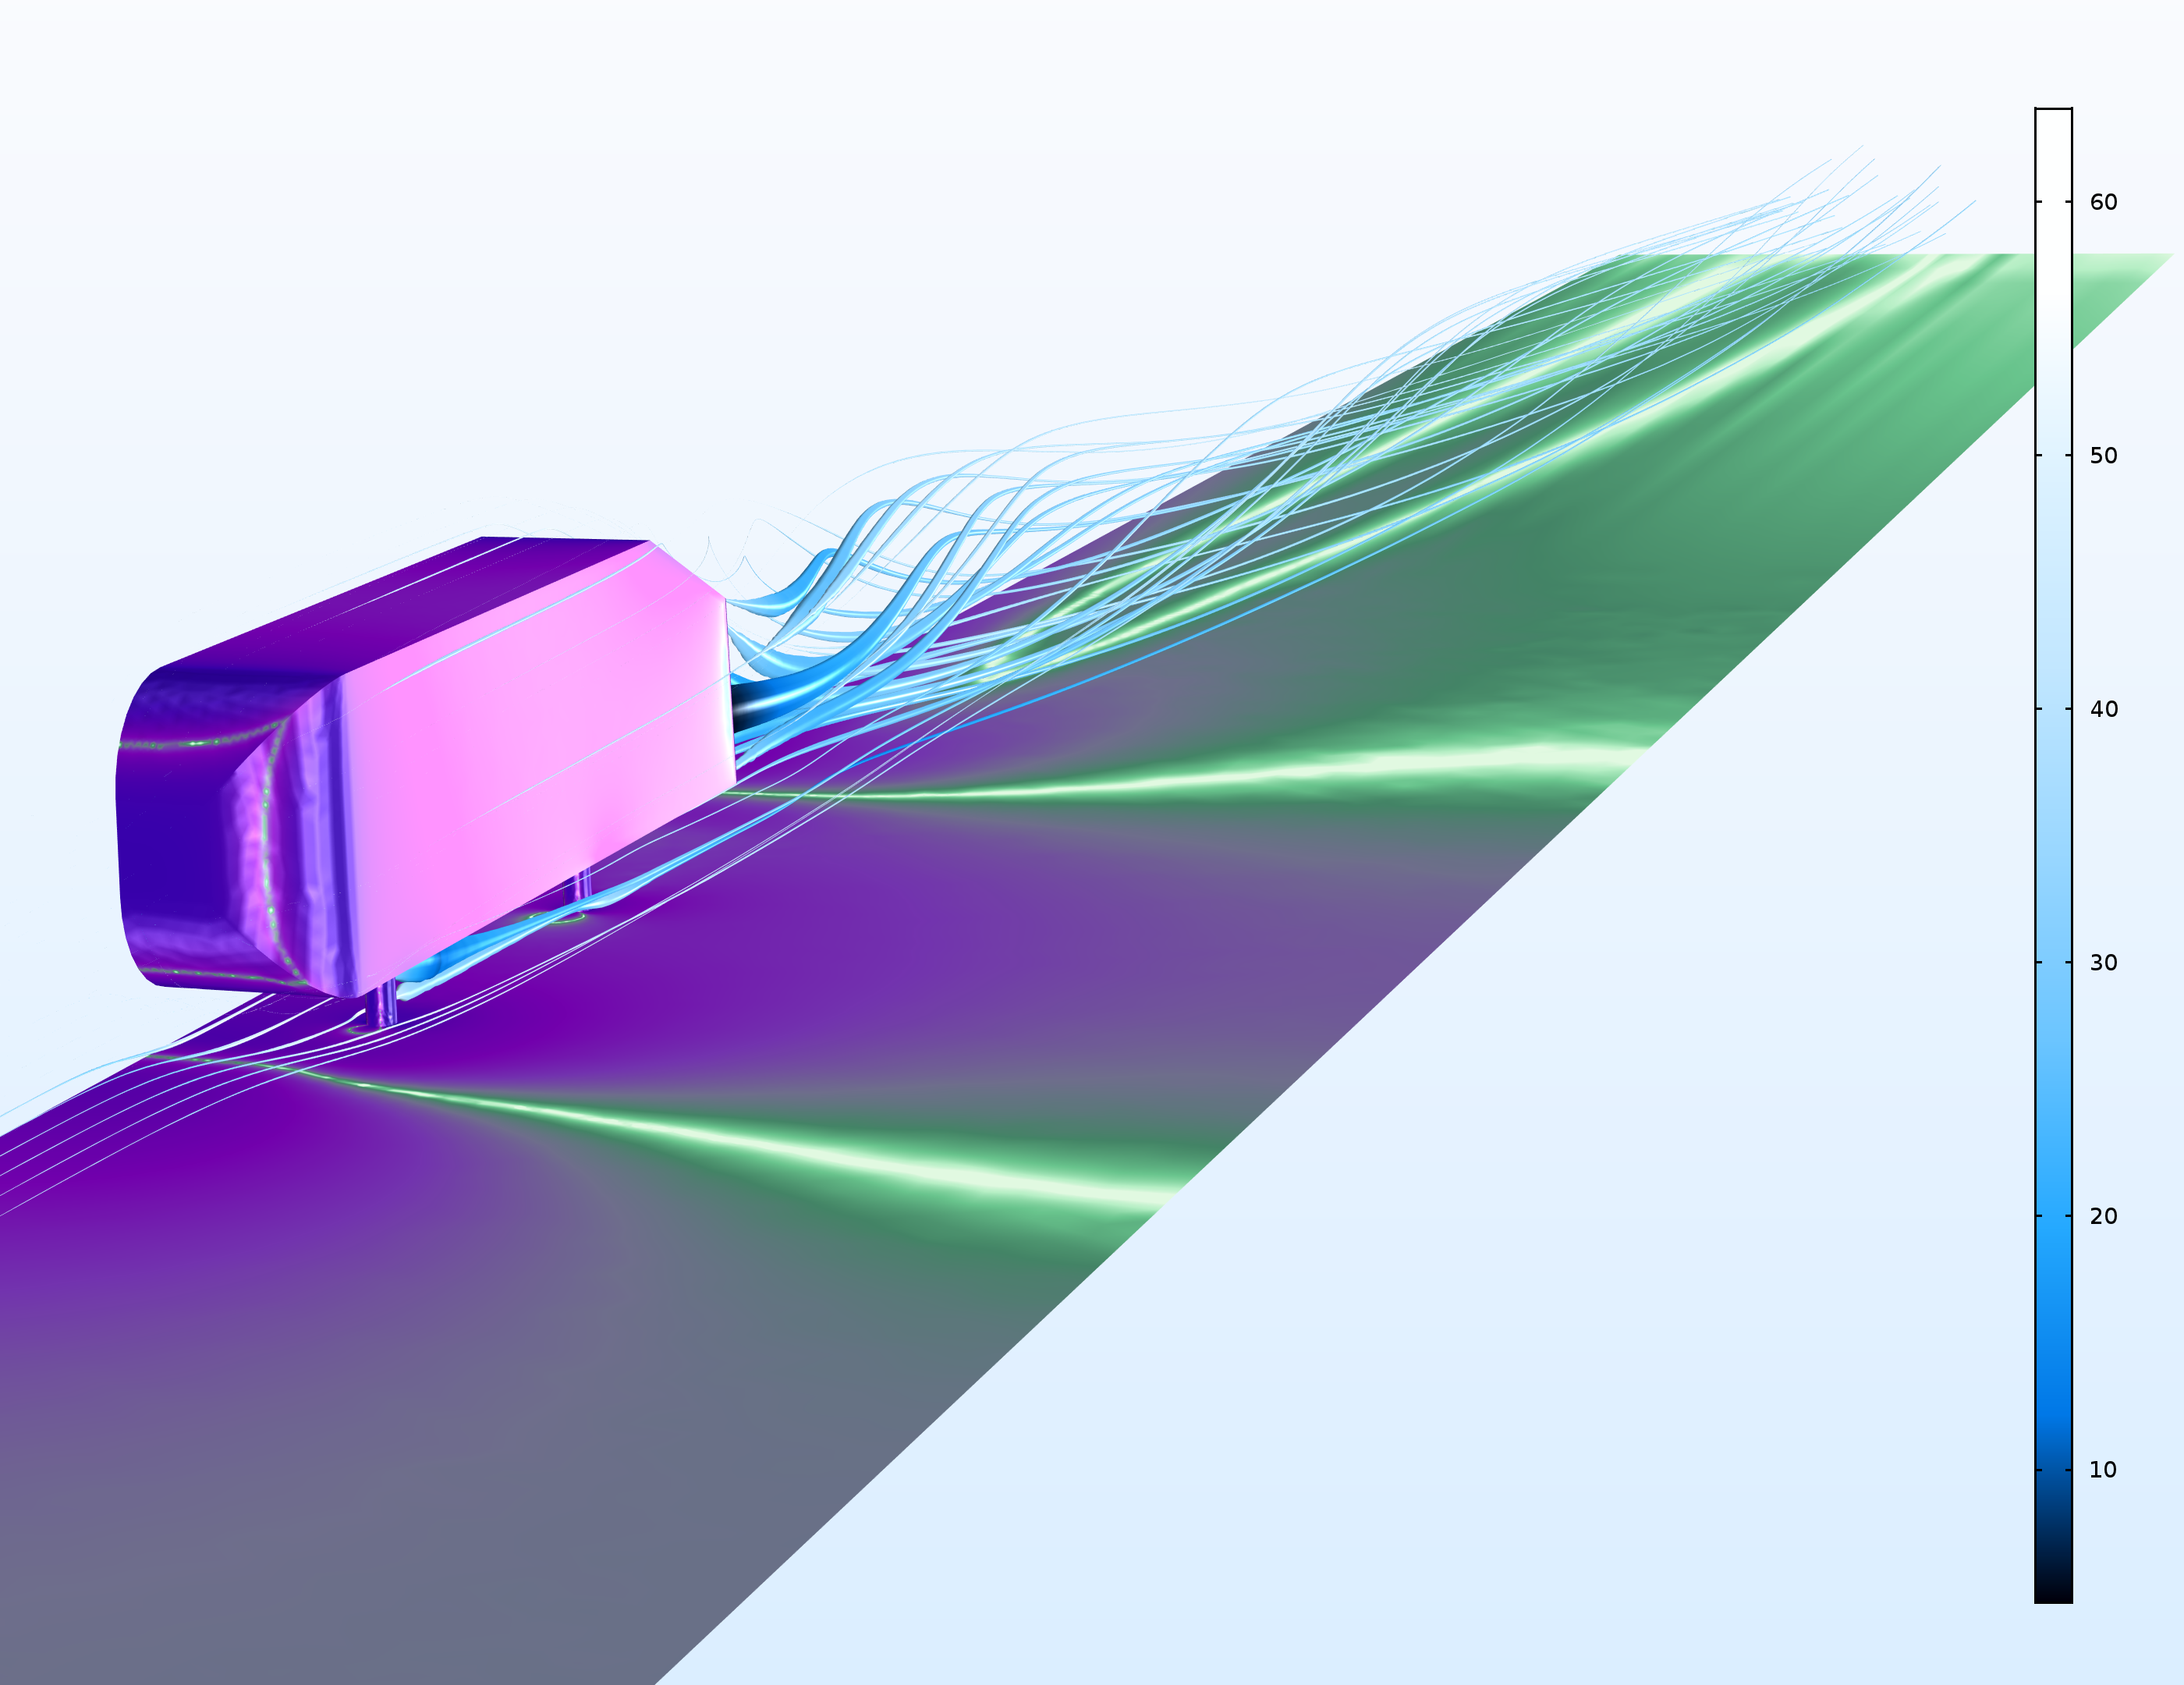 Postprocessing and Visualization - COMSOL® 5 3a Release Highlights